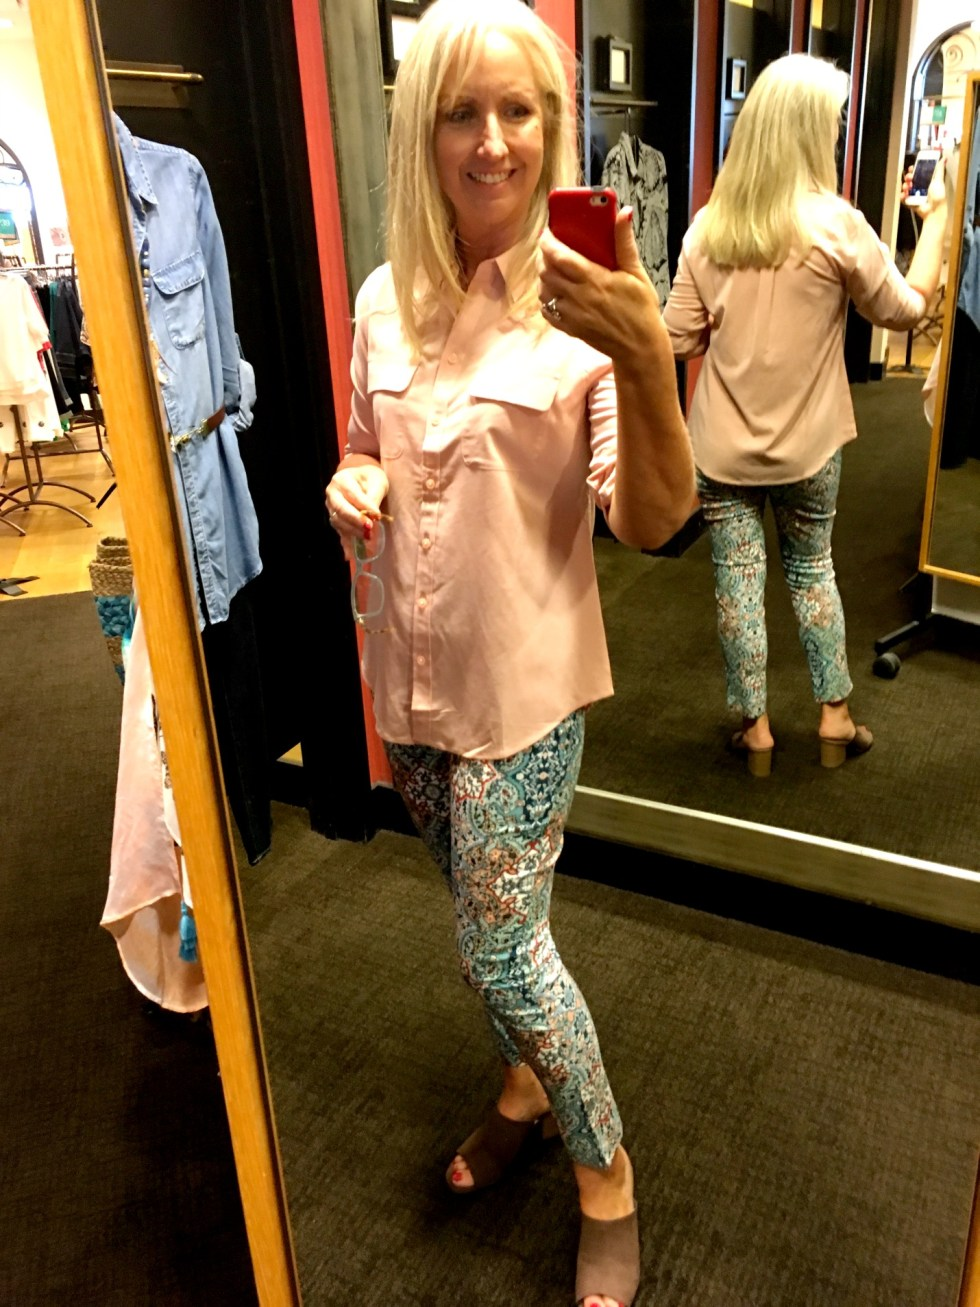 Fitting Room Try-On session Chicos